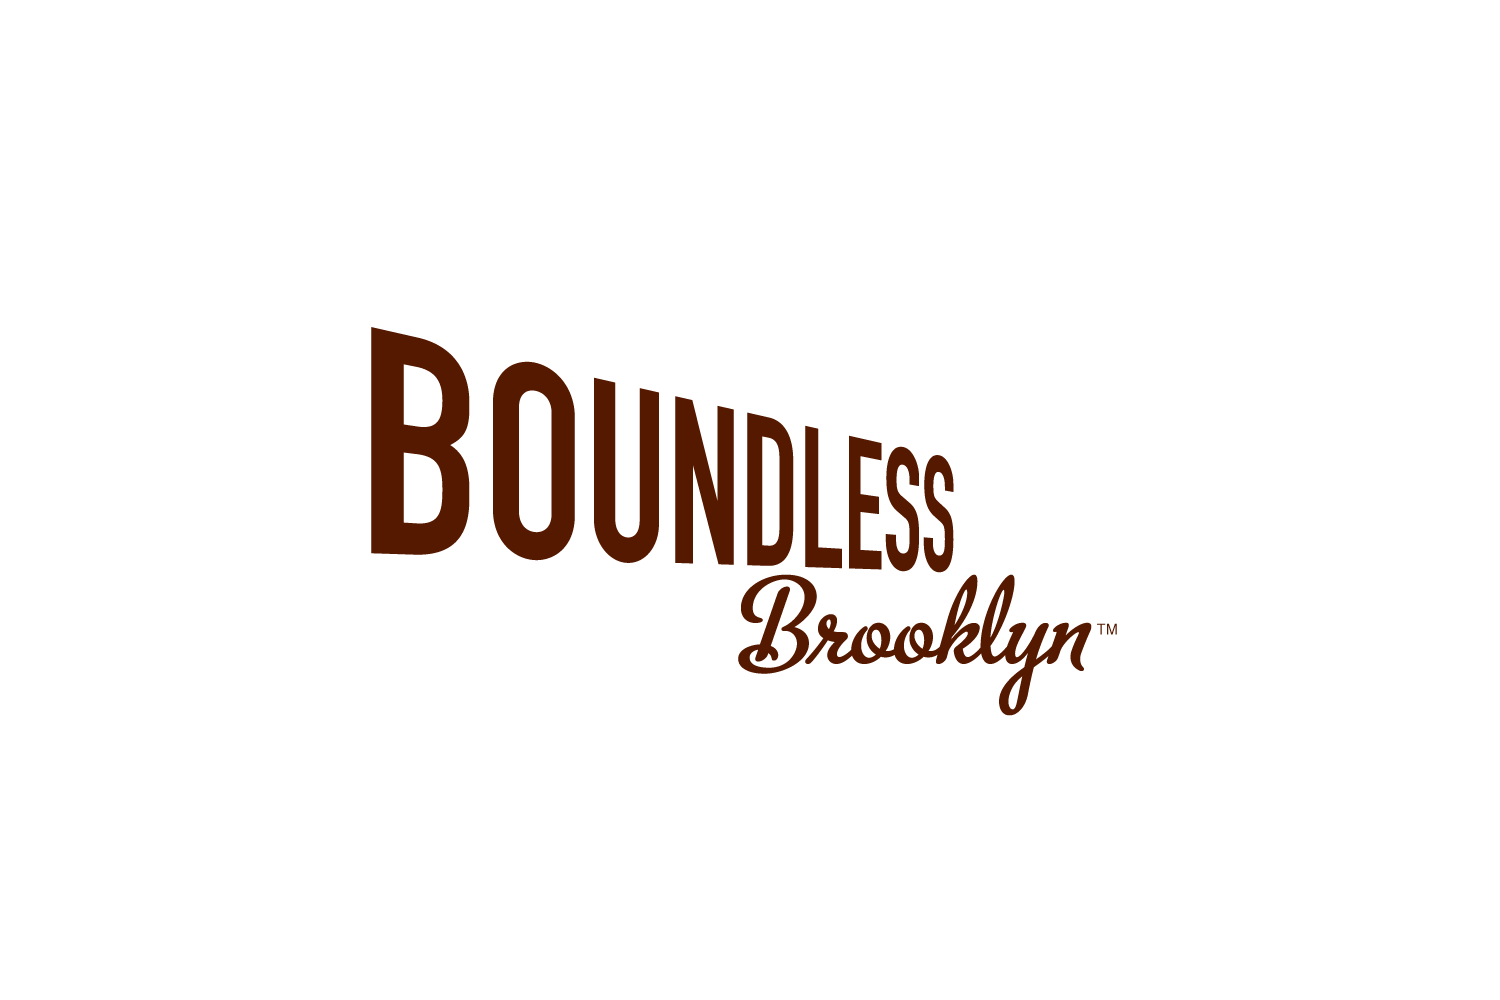 Boundless Brooklyn: logo for a DIY architectural model kit company in Brooklyn, NY